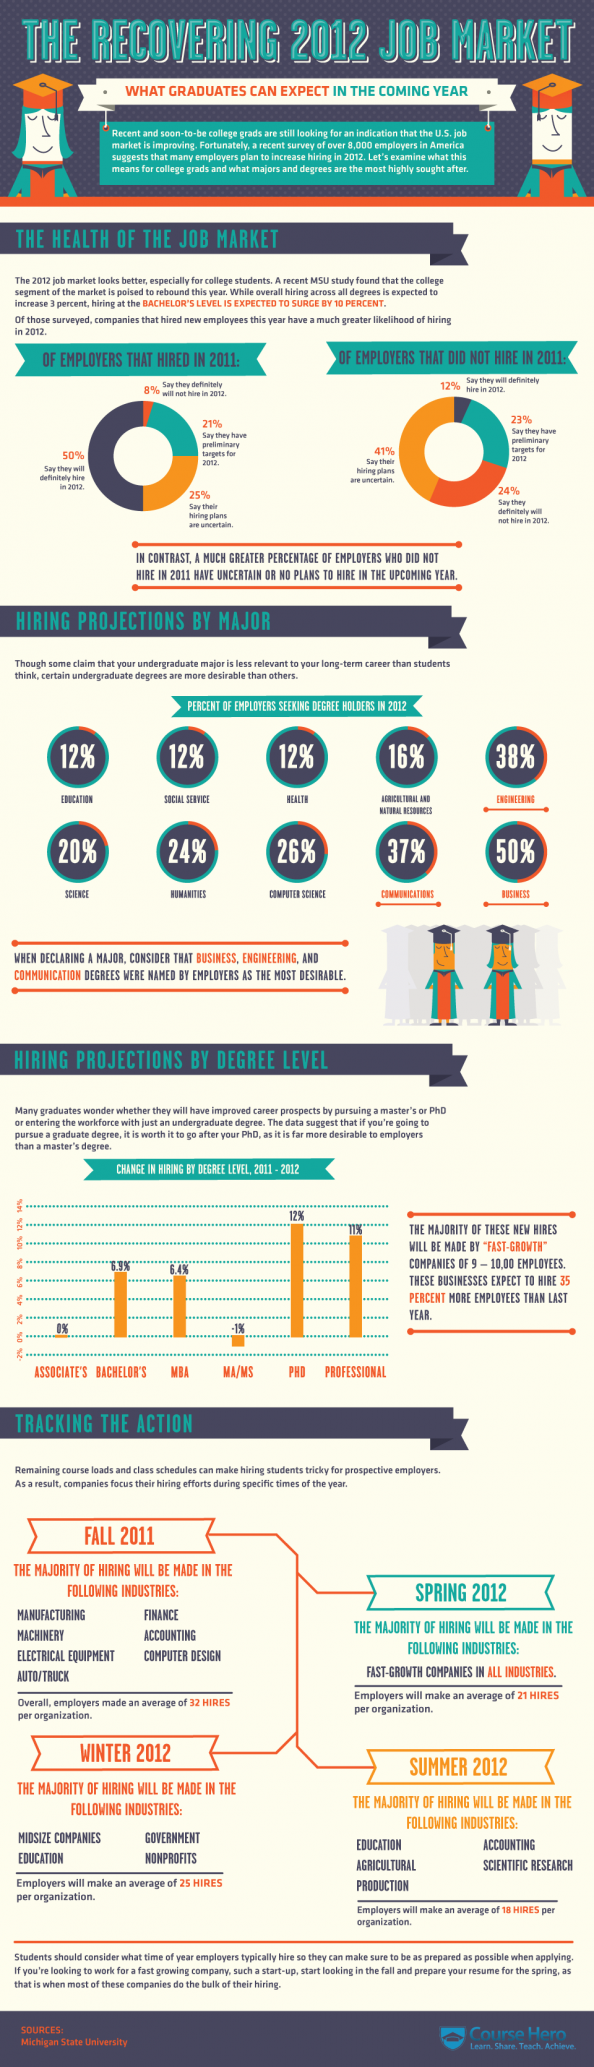 The Recovering 2012 Job Market Infographic